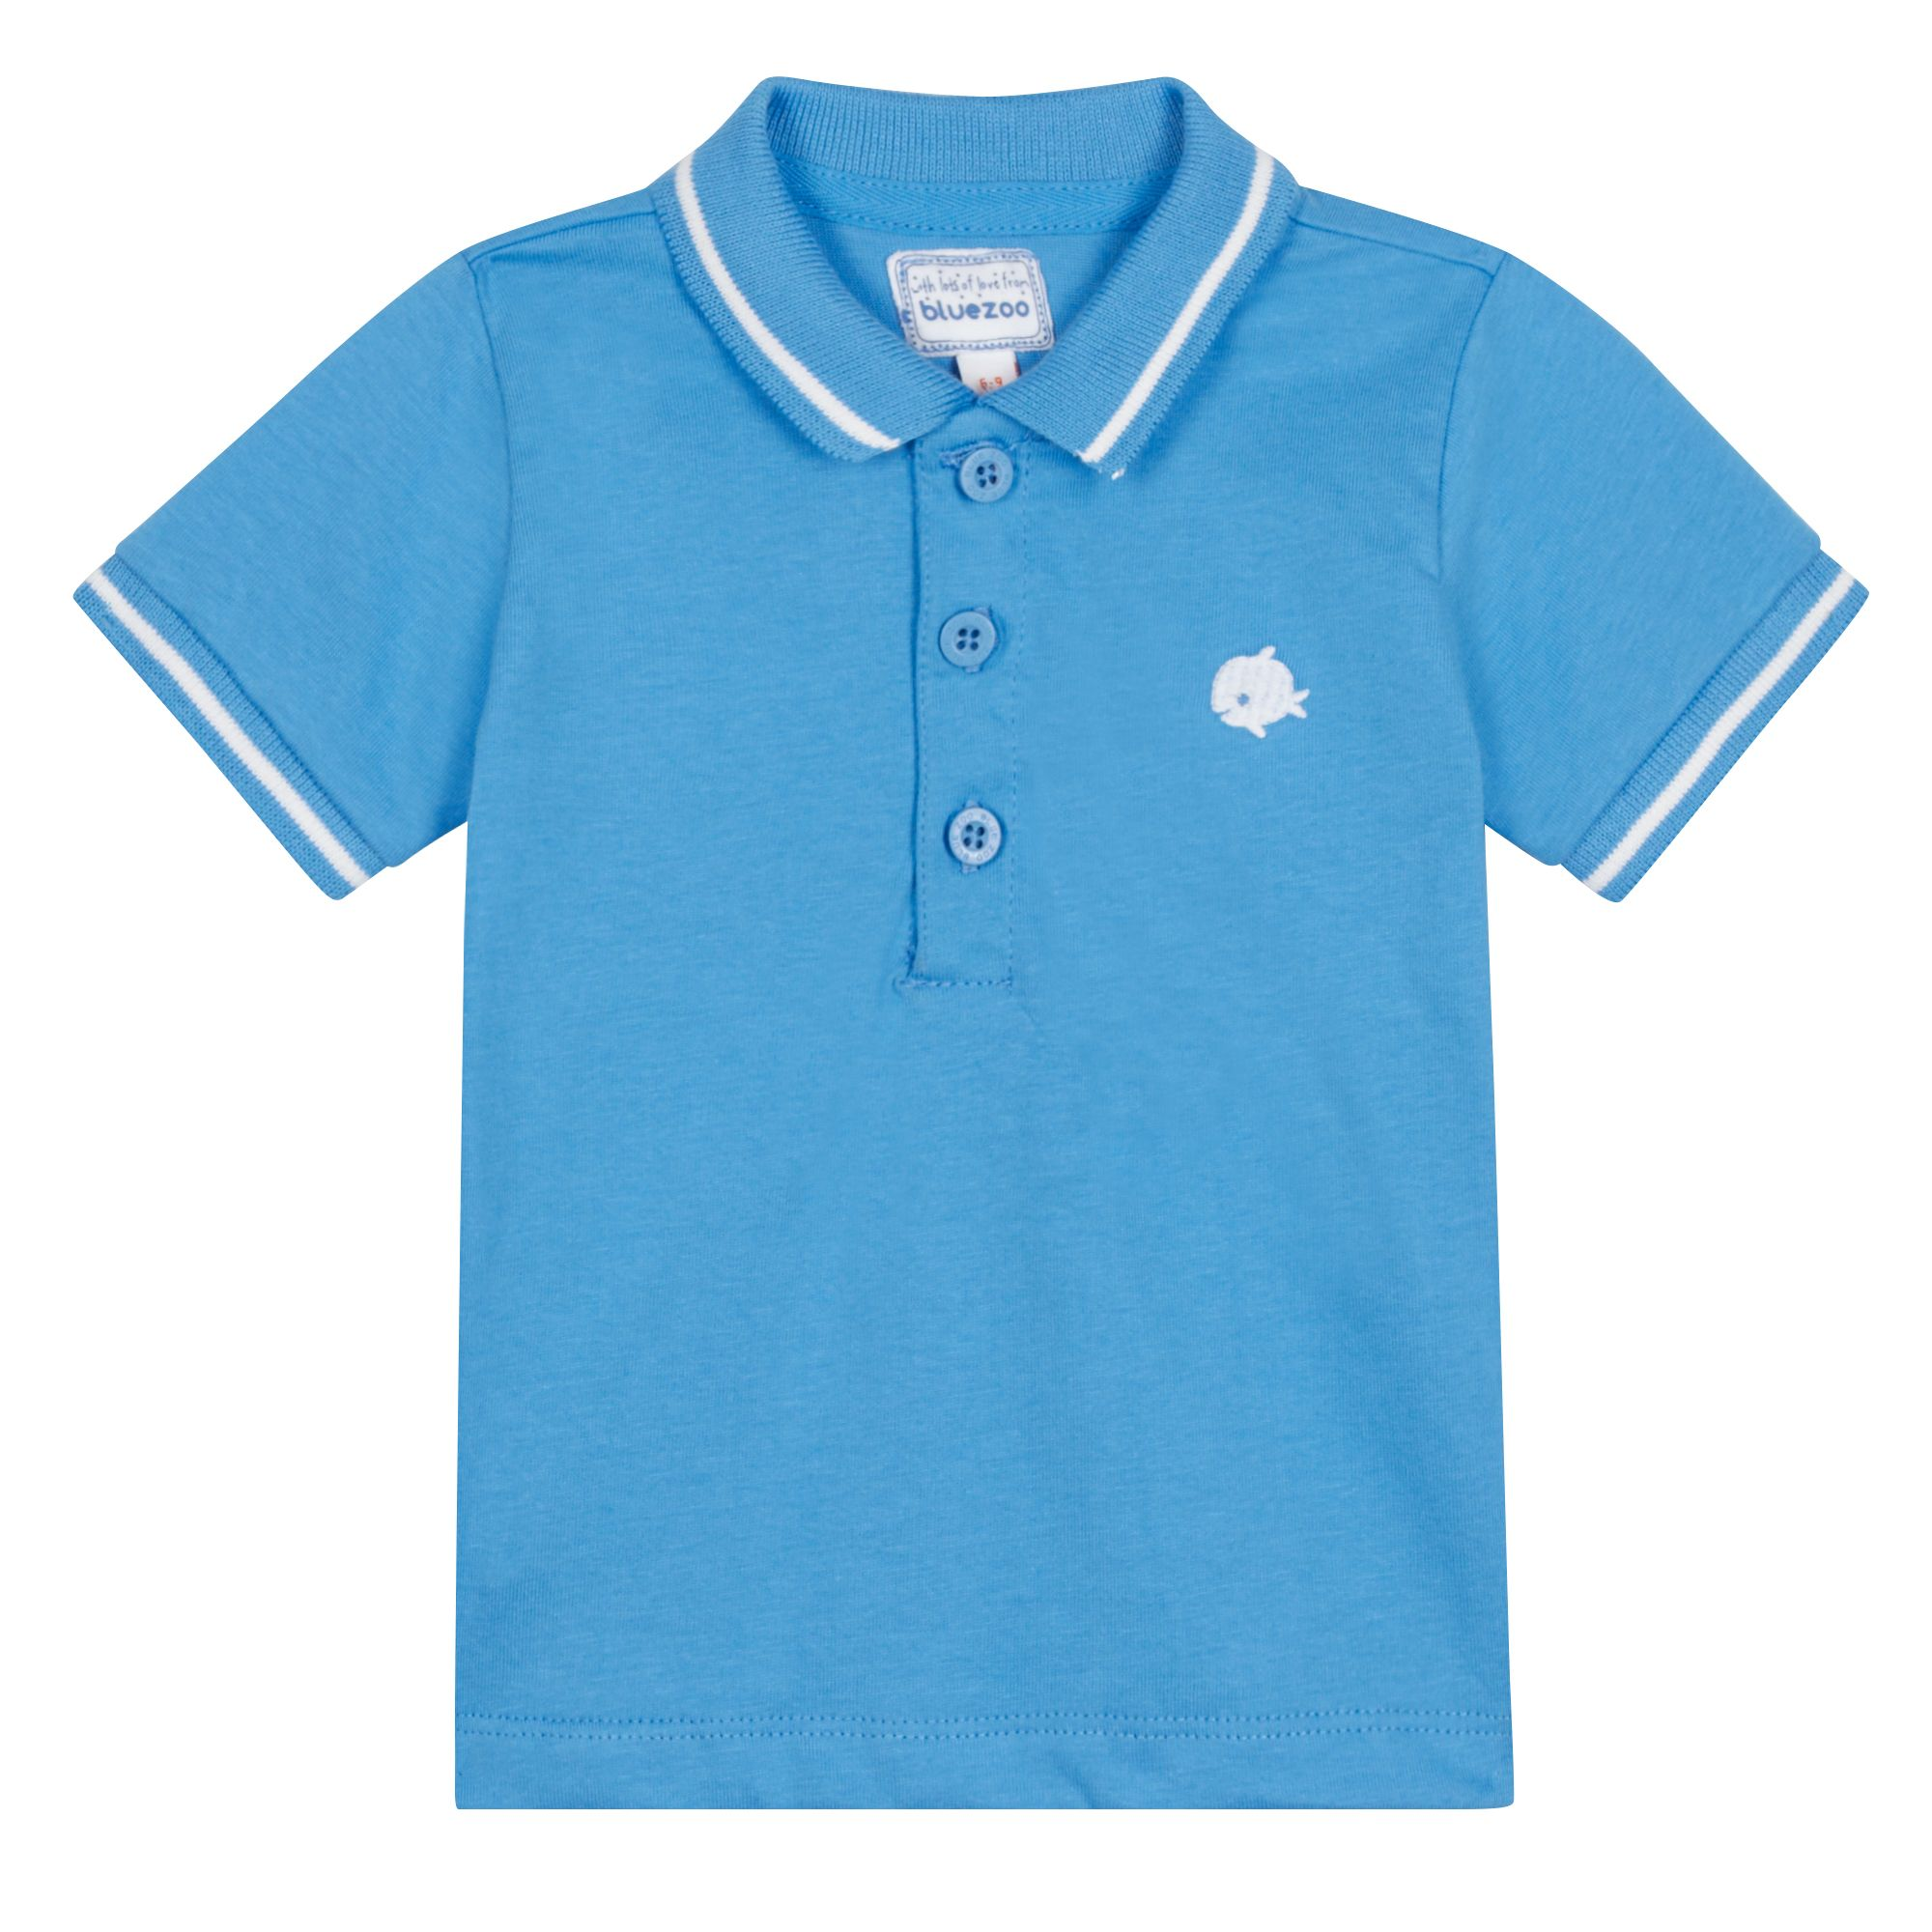 Baby Boy Gifts Debenhams : Women home men kids lingerie shoes gifts toys sports offers